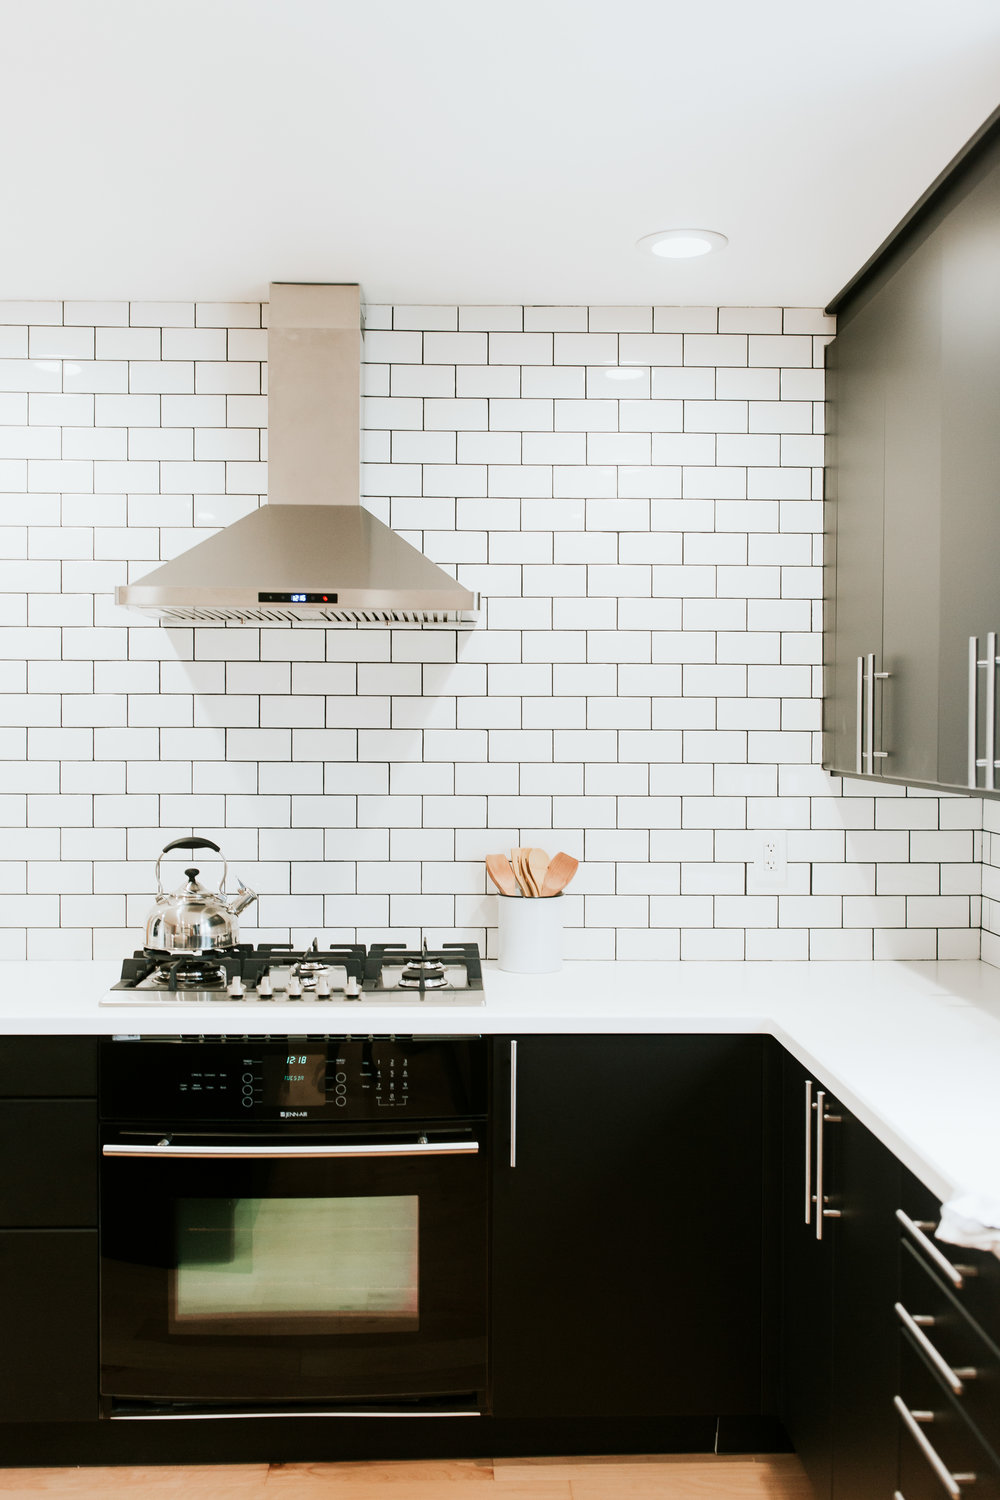 Full modern kitchen tour - Ikea Kungsbacka cabinets, subway tile, light wood floors, range hood